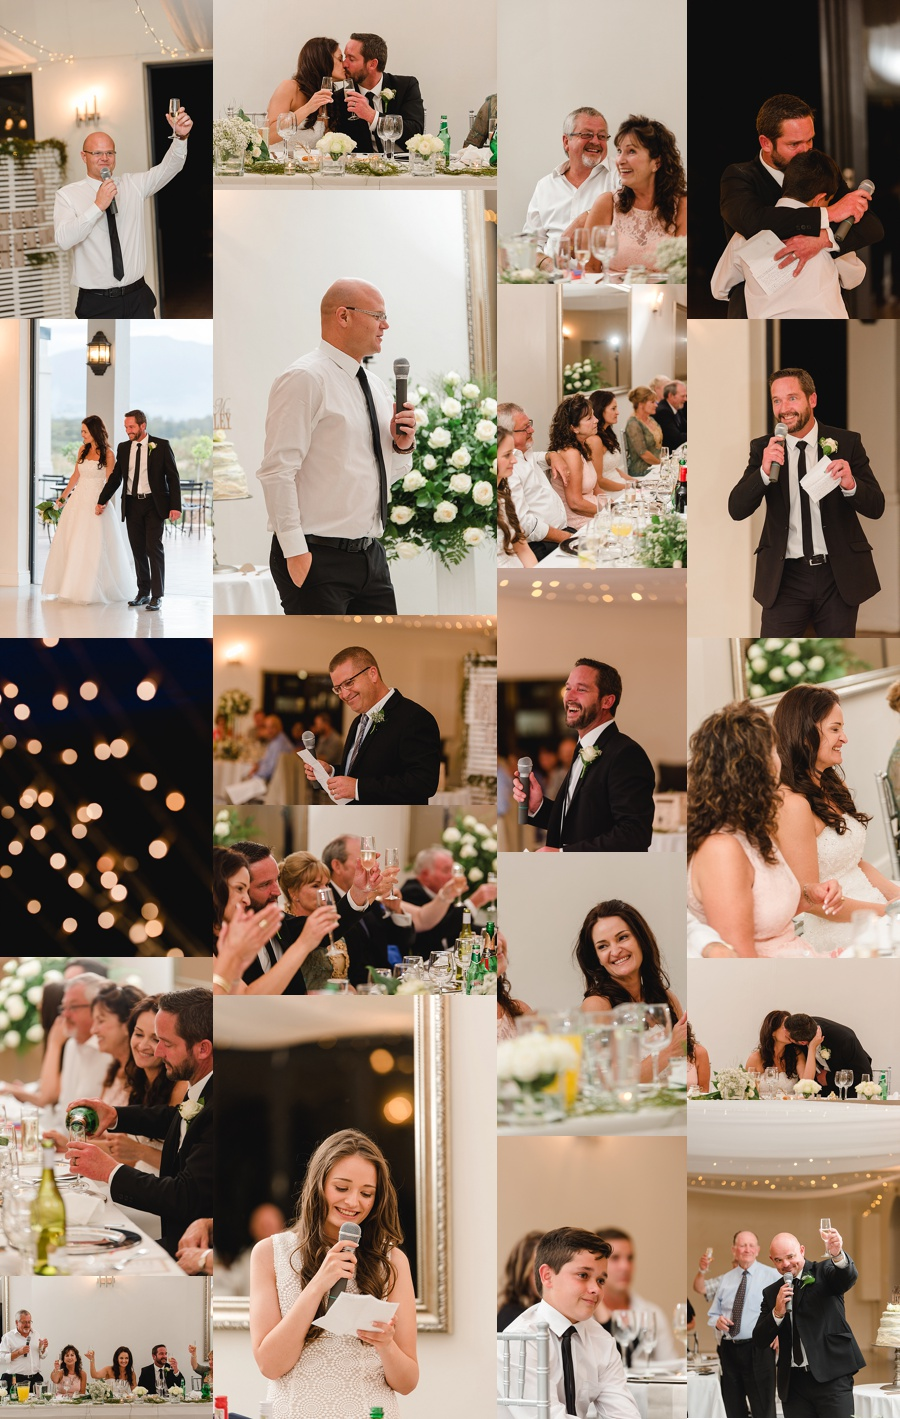 Darren Bester - Cape Town Wedding Photographer - Kronenburg - Cindy and Evan_0049.jpg